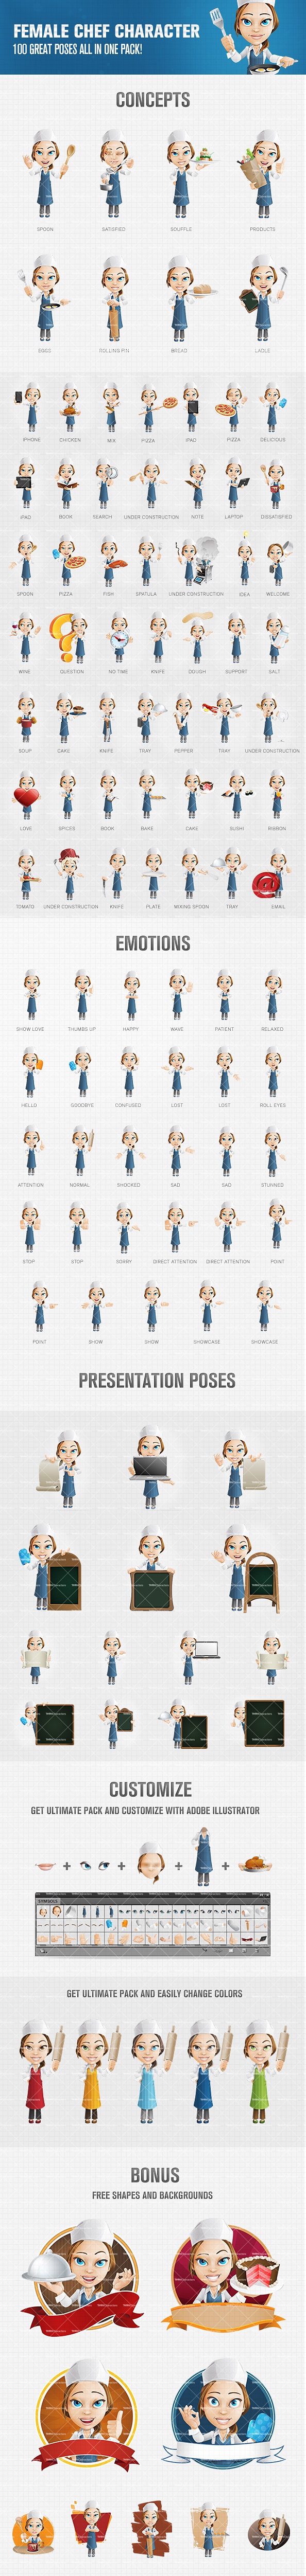 female chef cartoon character cartoon character design and